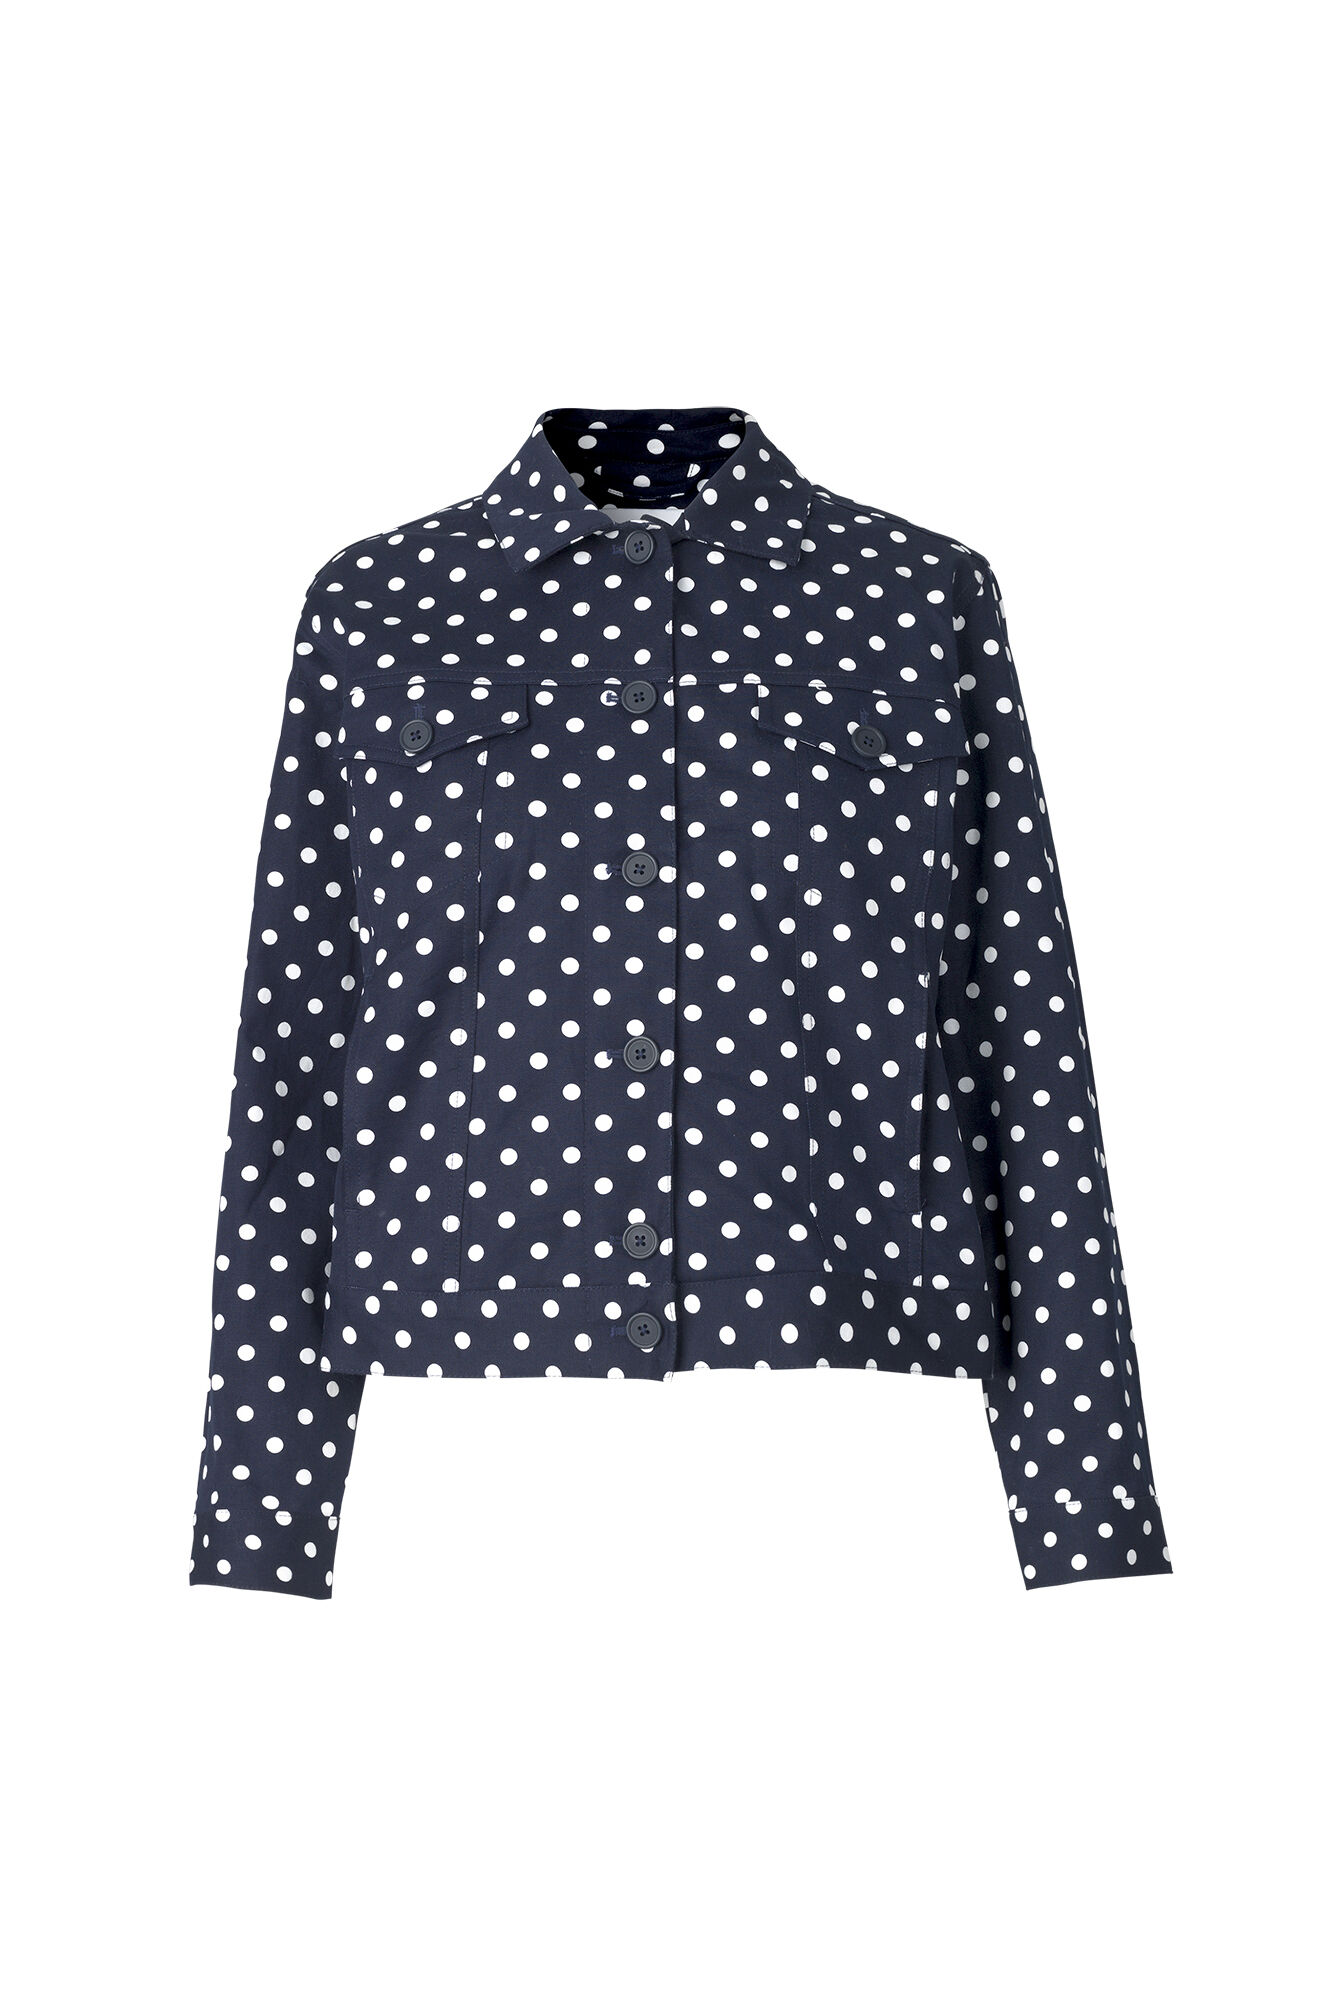 ENHONEY JACKET AOP 6503, NAVY DOT BIG